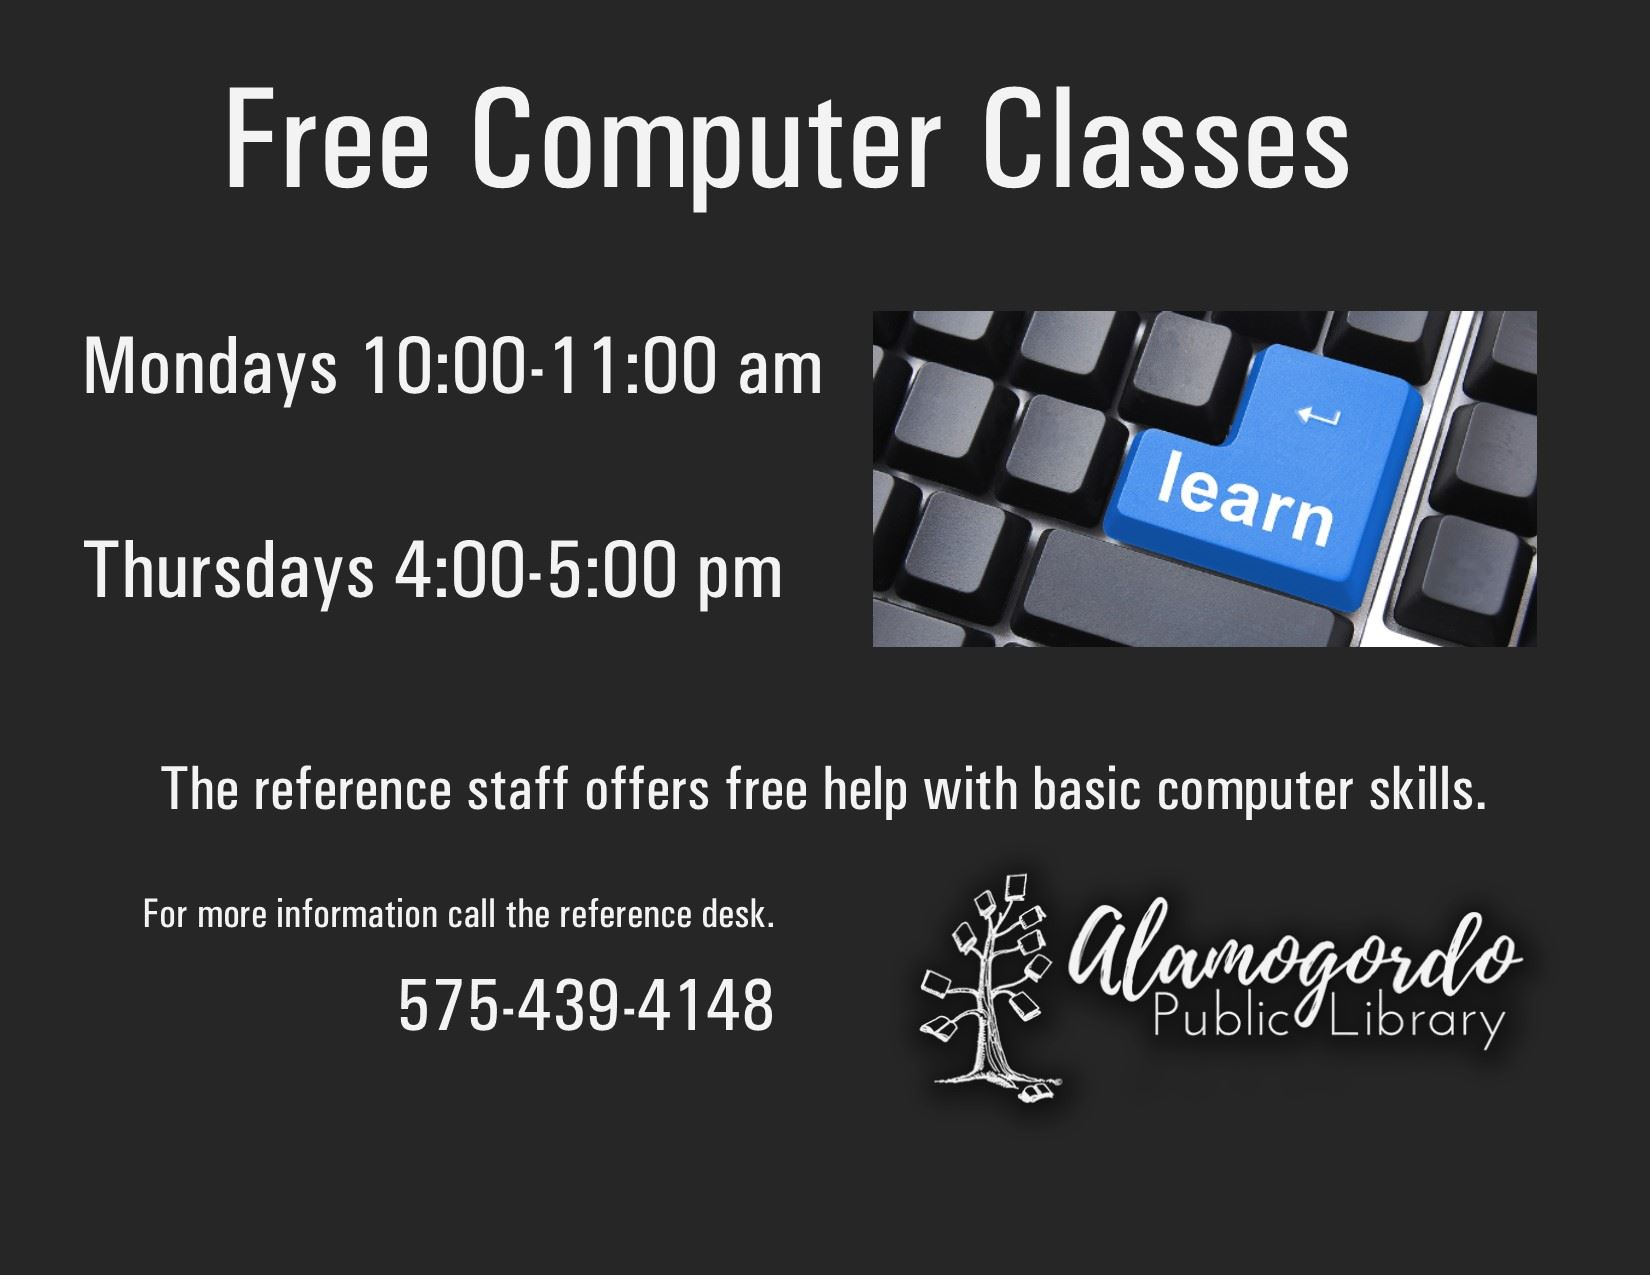 Adult Computer Classes at the library on Mondays and Thursdays